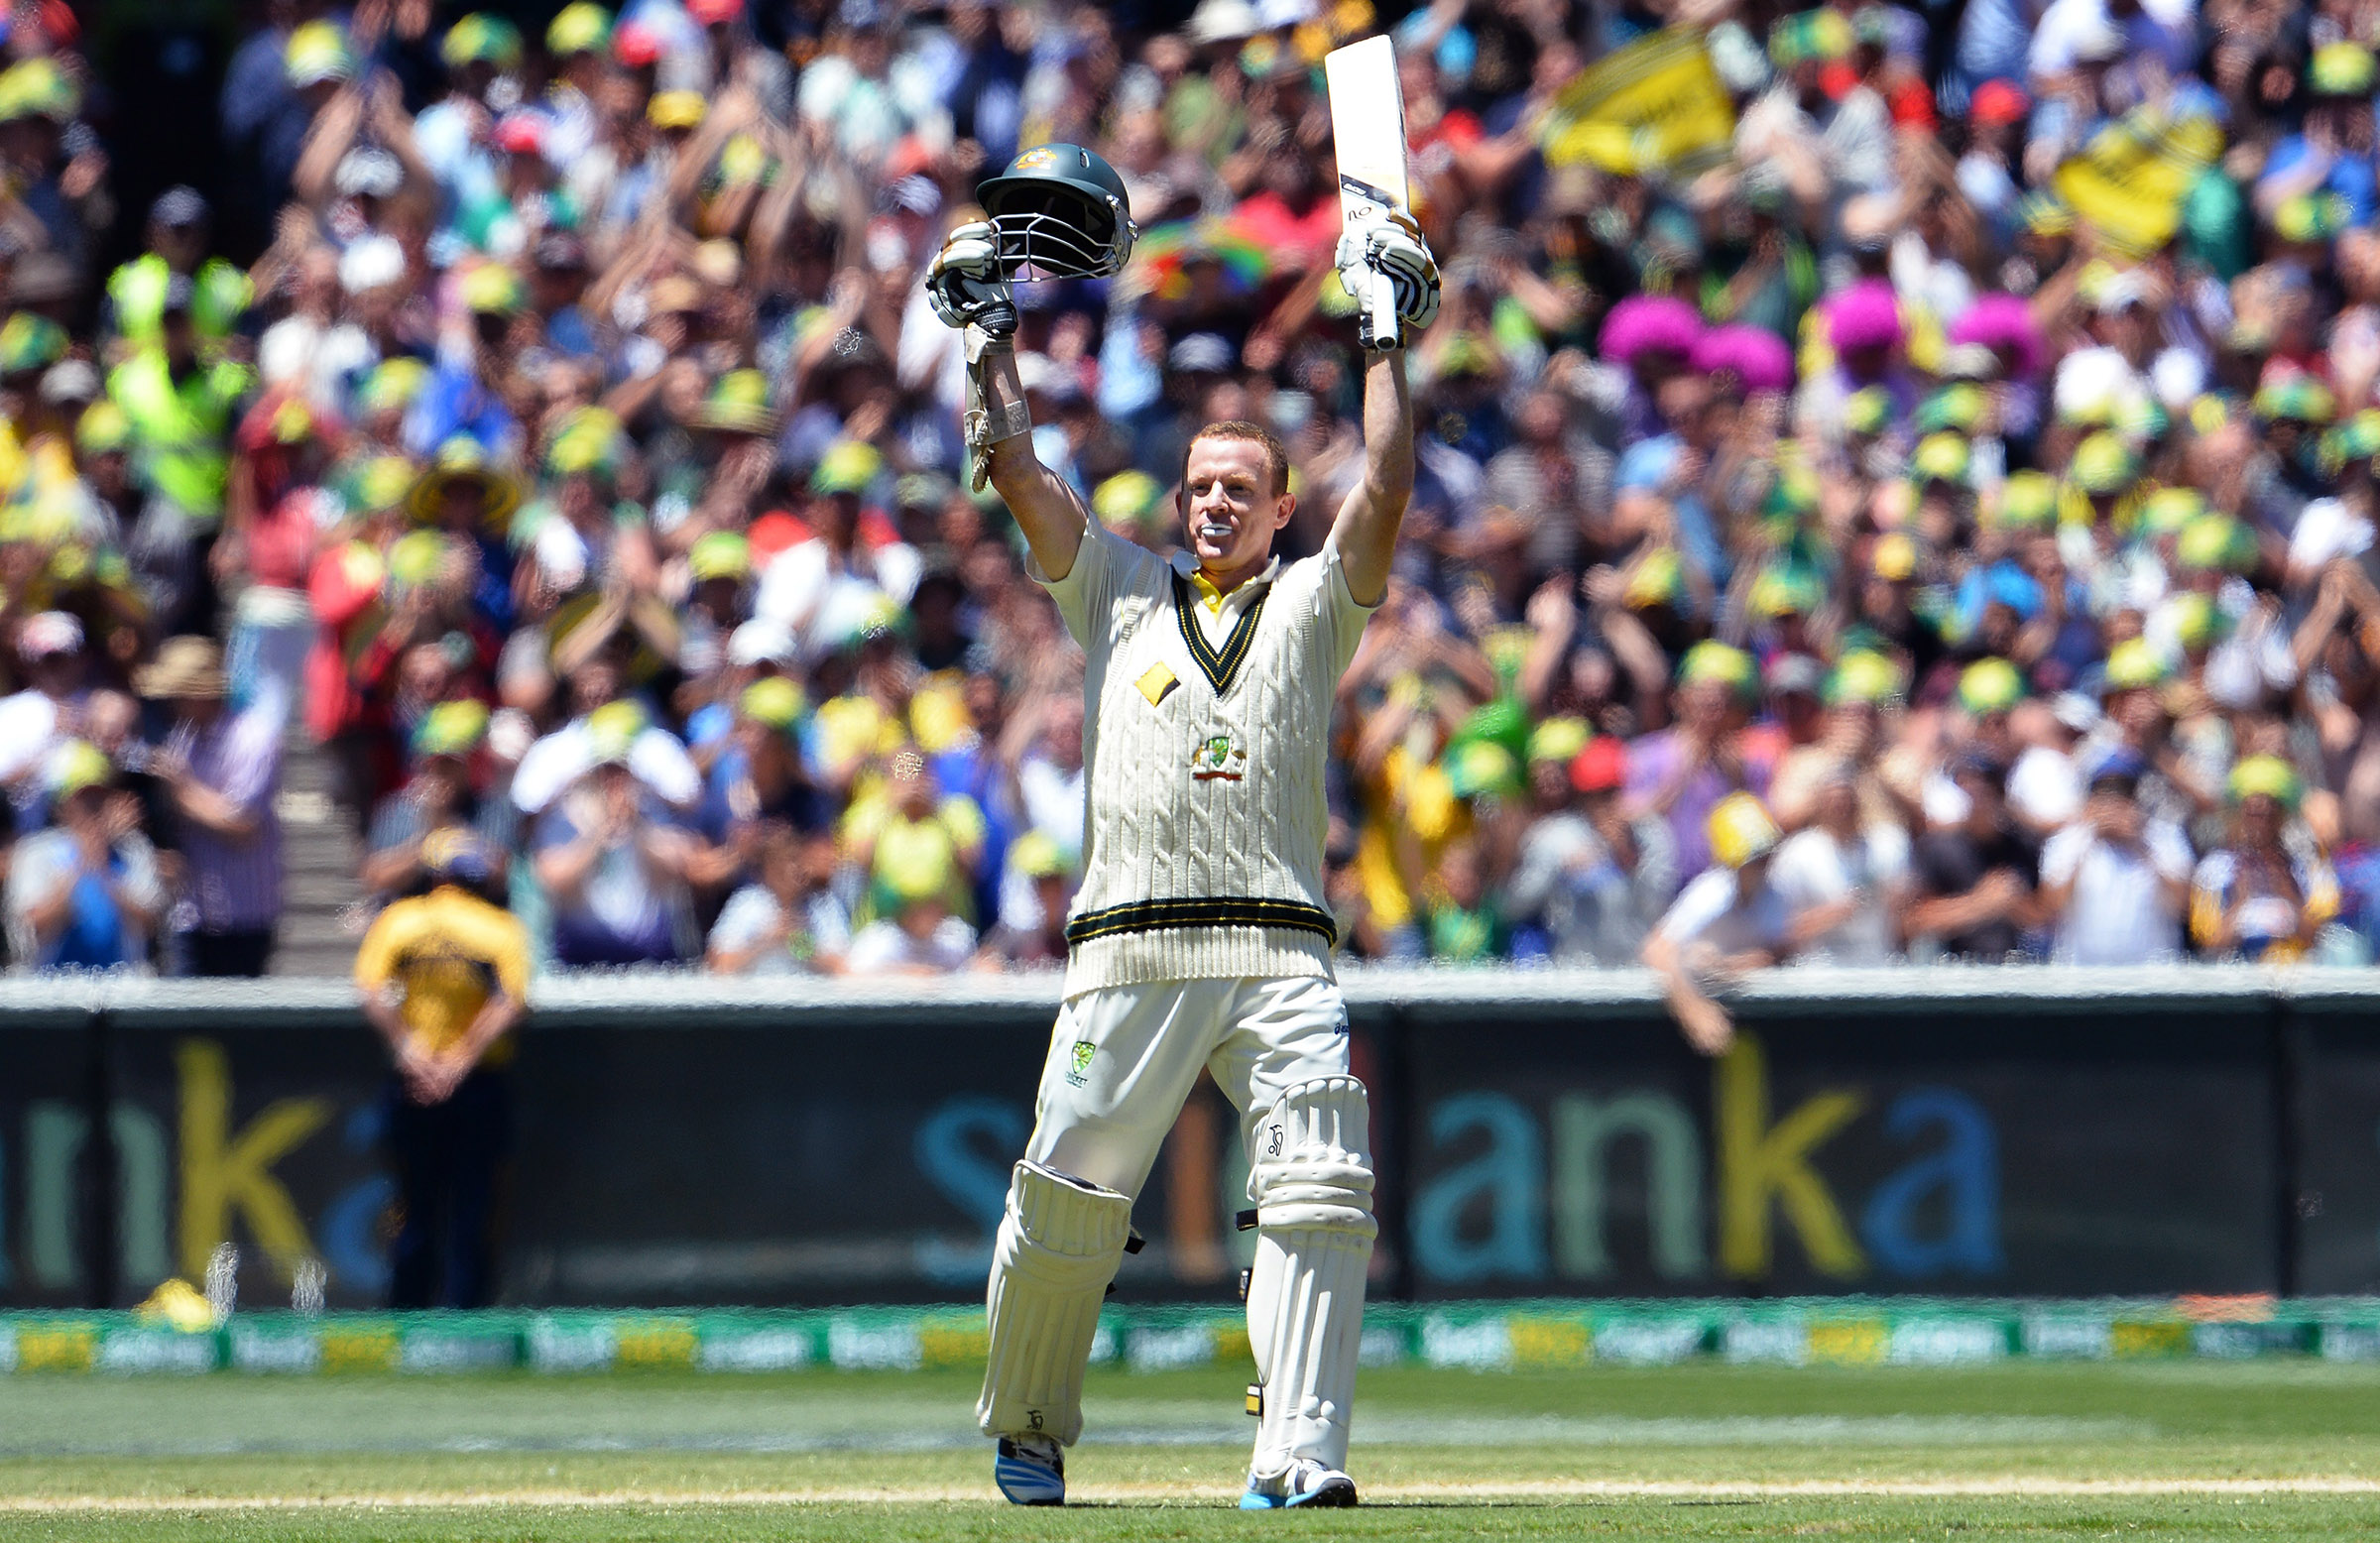 Rogers celebrates his Ashes ton at the MCG in 2013 // Getty